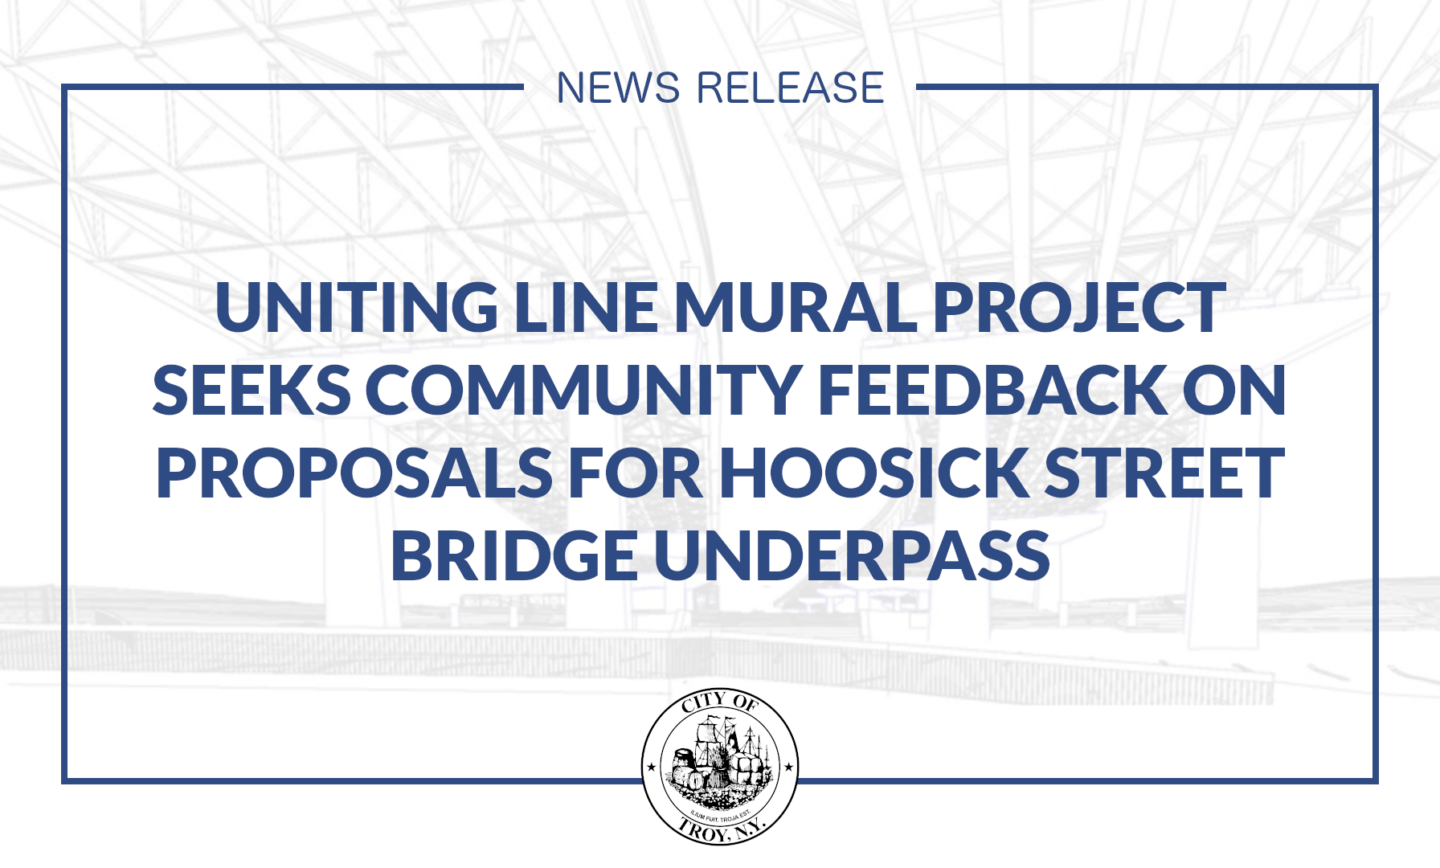 The Uniting Line Mural Project Seeks Community Feedback on Public Art Proposals for the Hoosick Street Underpass